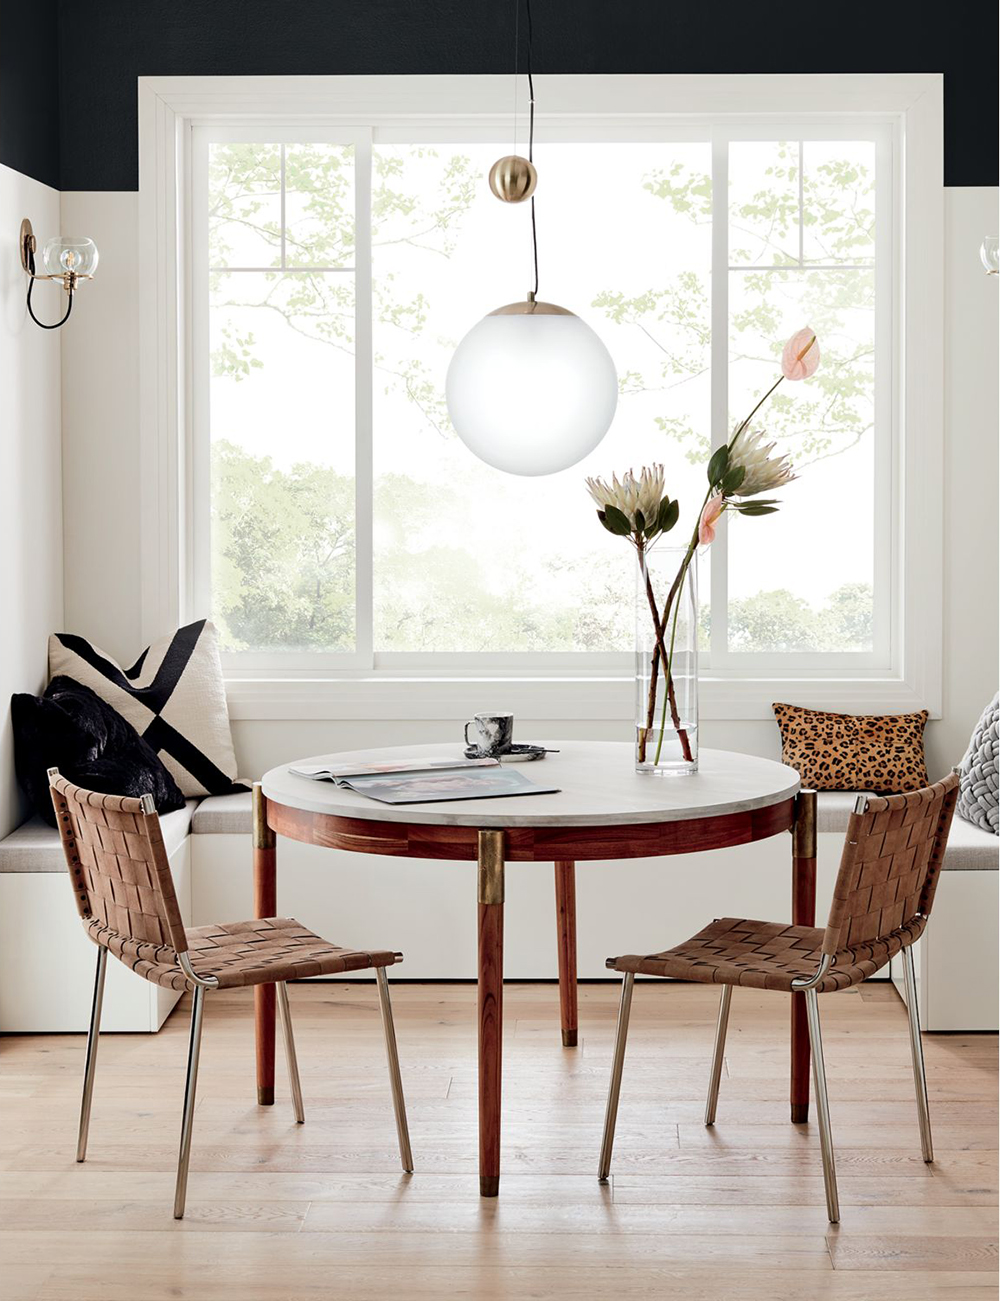 We Are Designing Endless Kitchen And Dining Rooms These Days, And It Seems  Like We Are On The Hunt For New And Interesting Dining Tables And ...